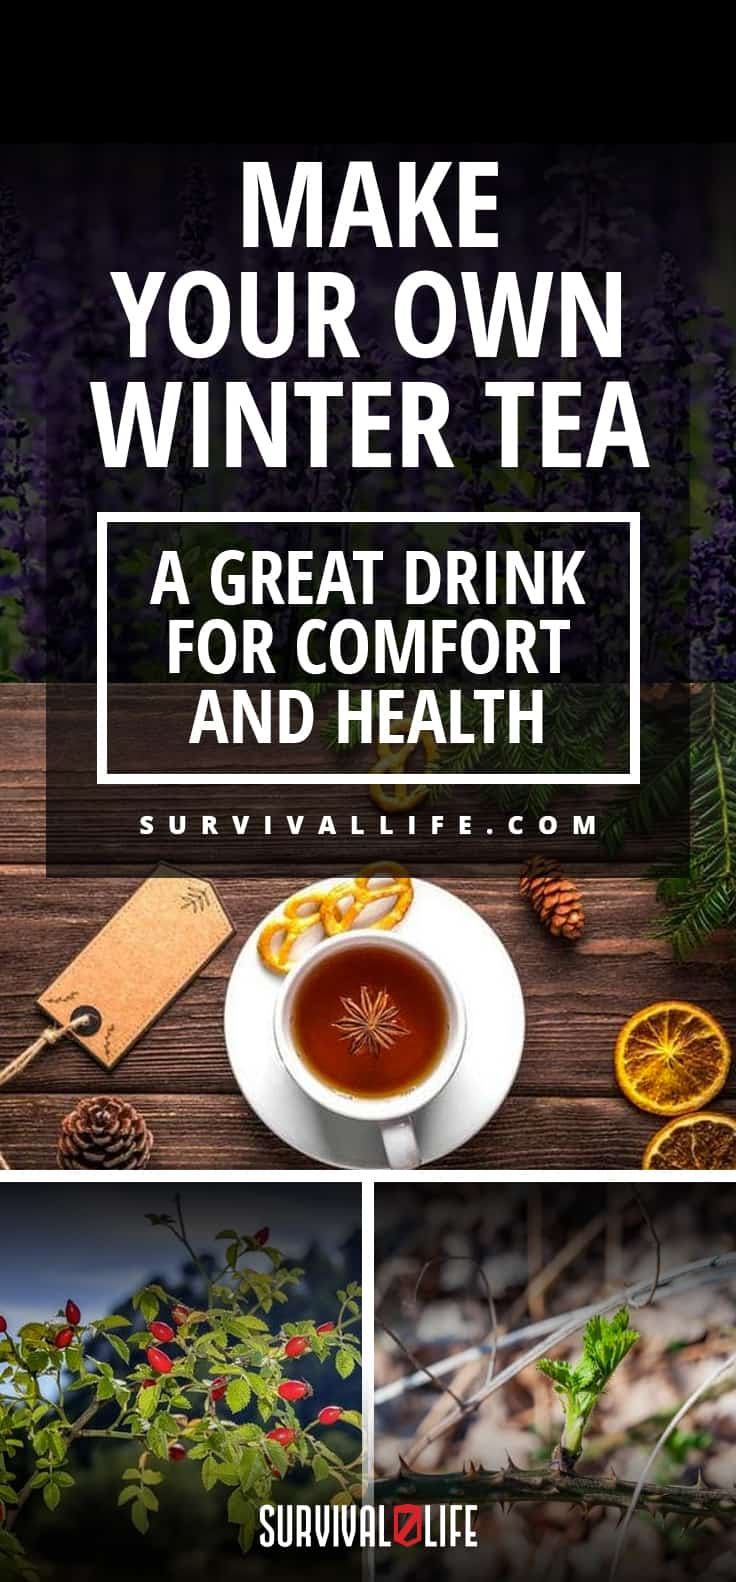 Make Your Own Winter Tea | A Great Drink for Comfort and Health